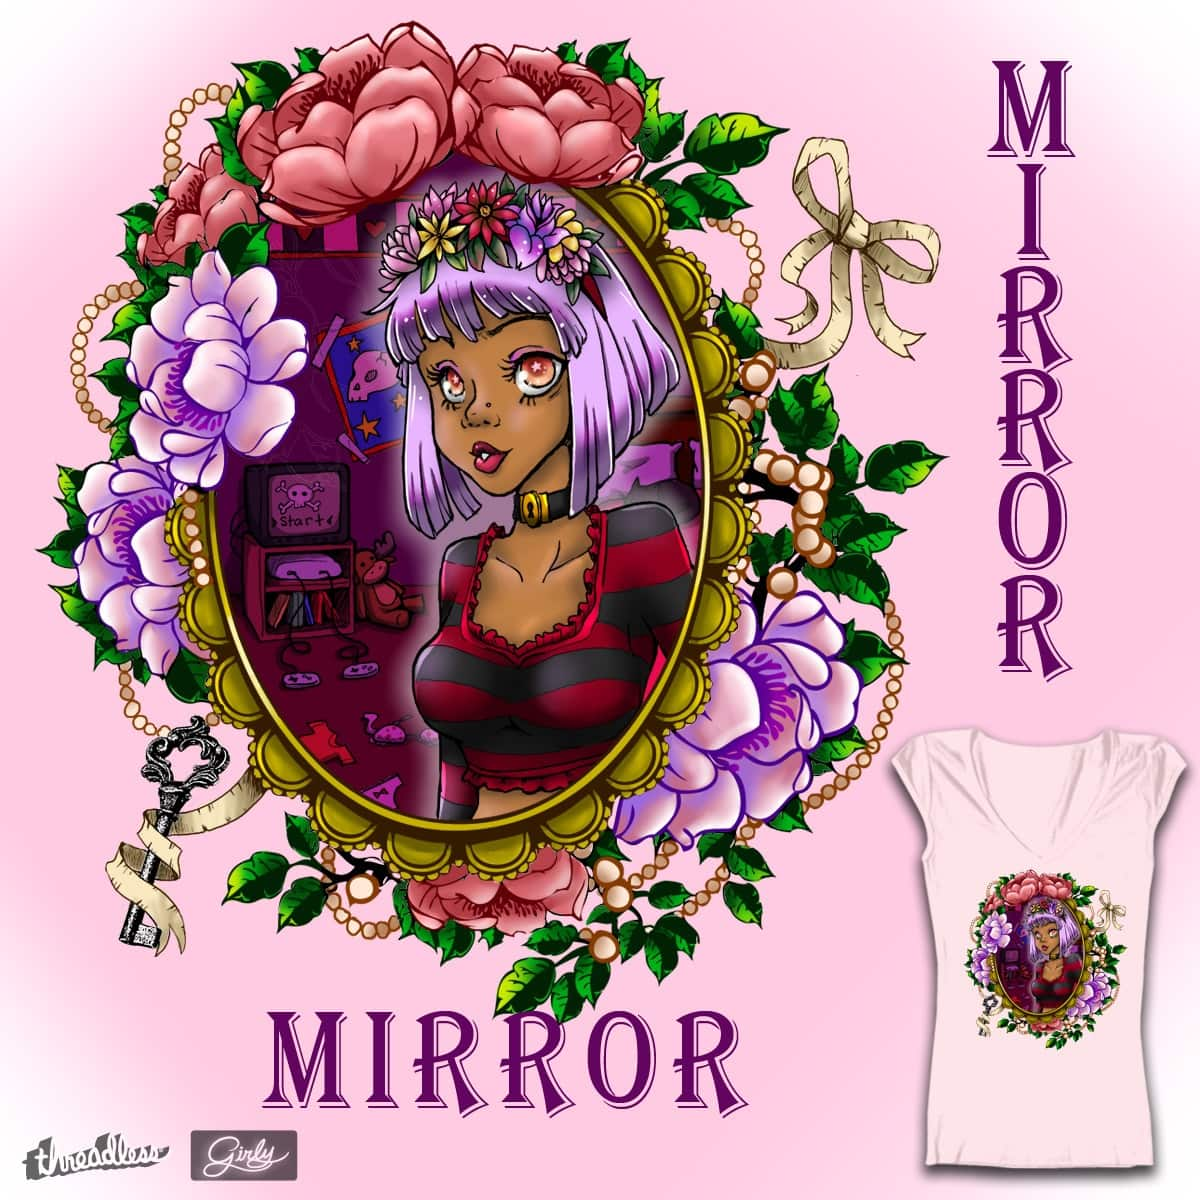 Mirror Mirror  by washue on Threadless